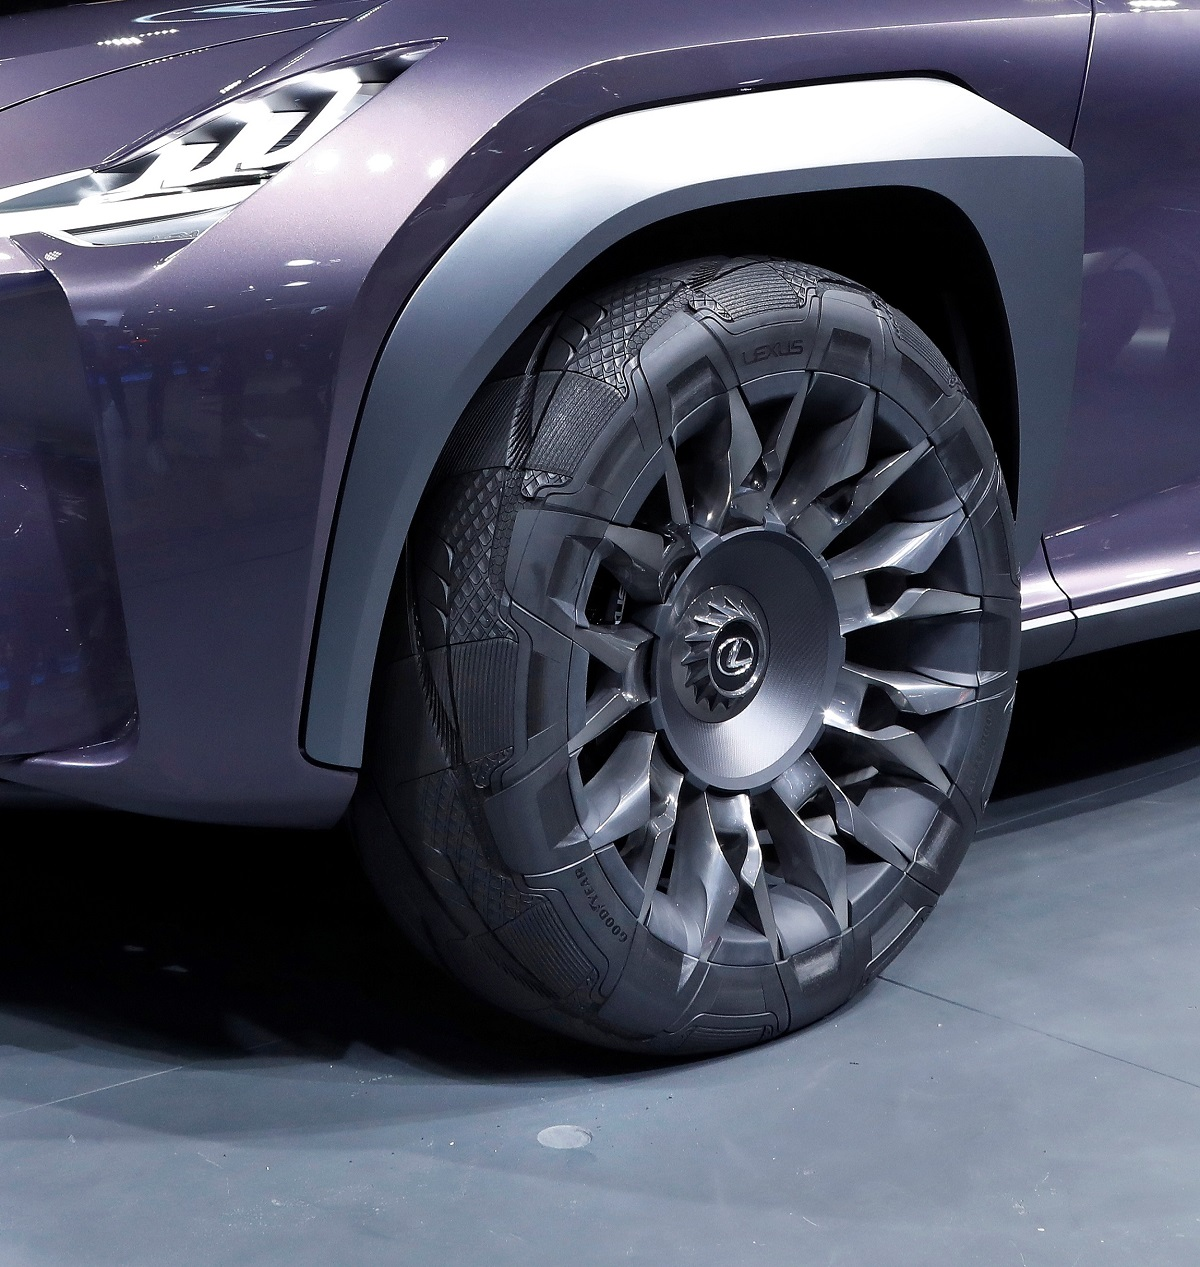 003_Goodyear Lexus Paris 2016.jpg